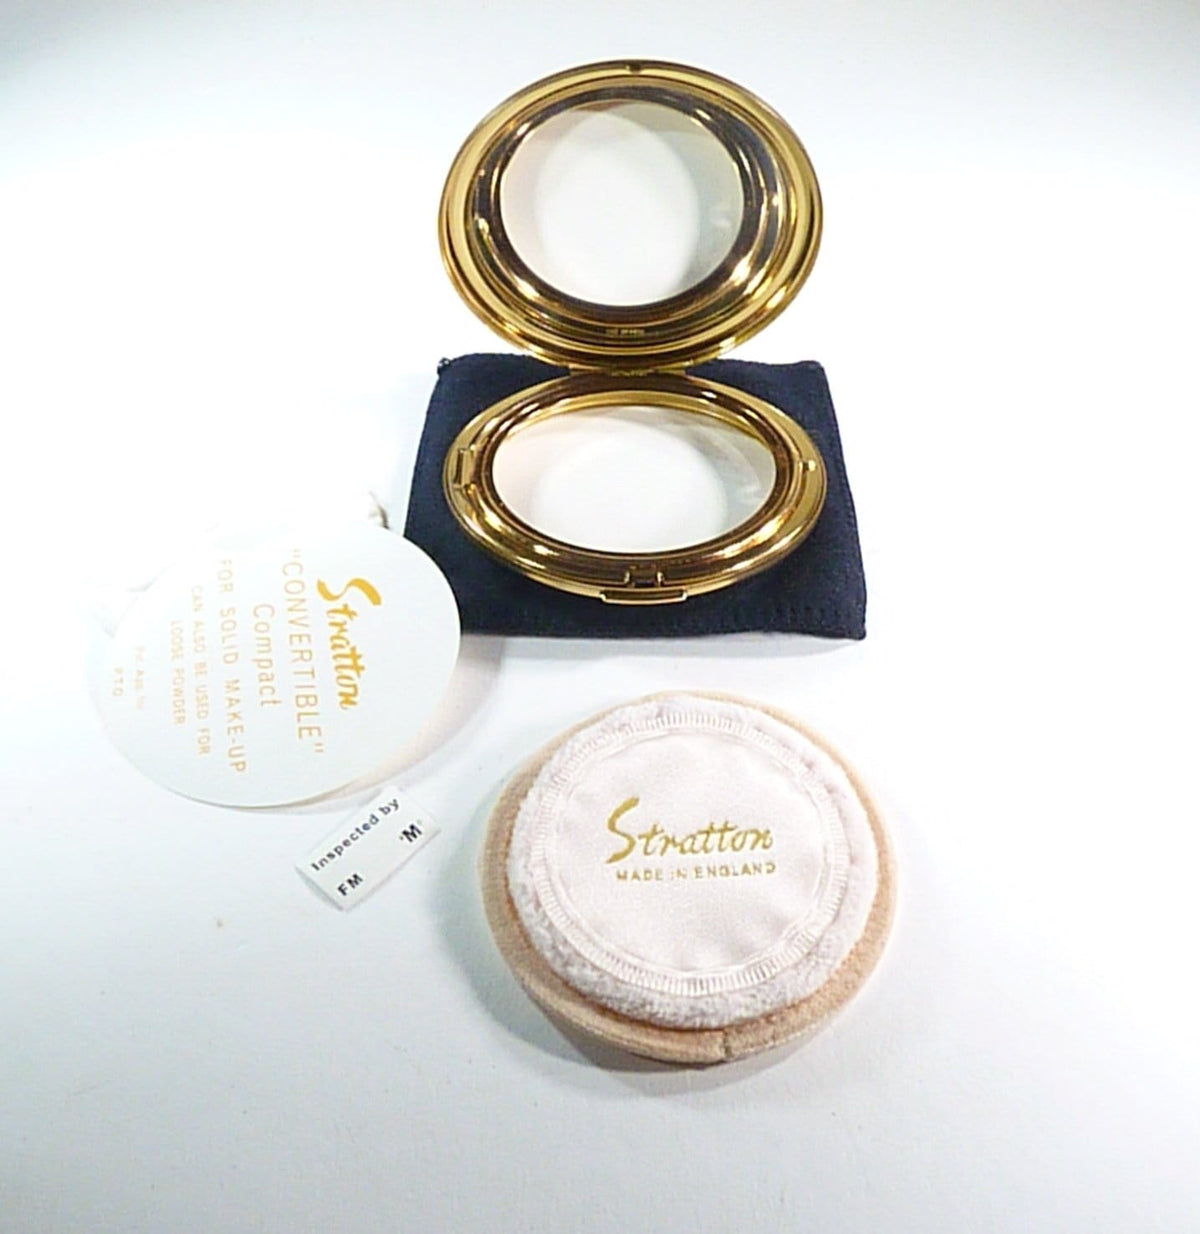 Stratton Compact UK Stockists Refillable Vintage Powder